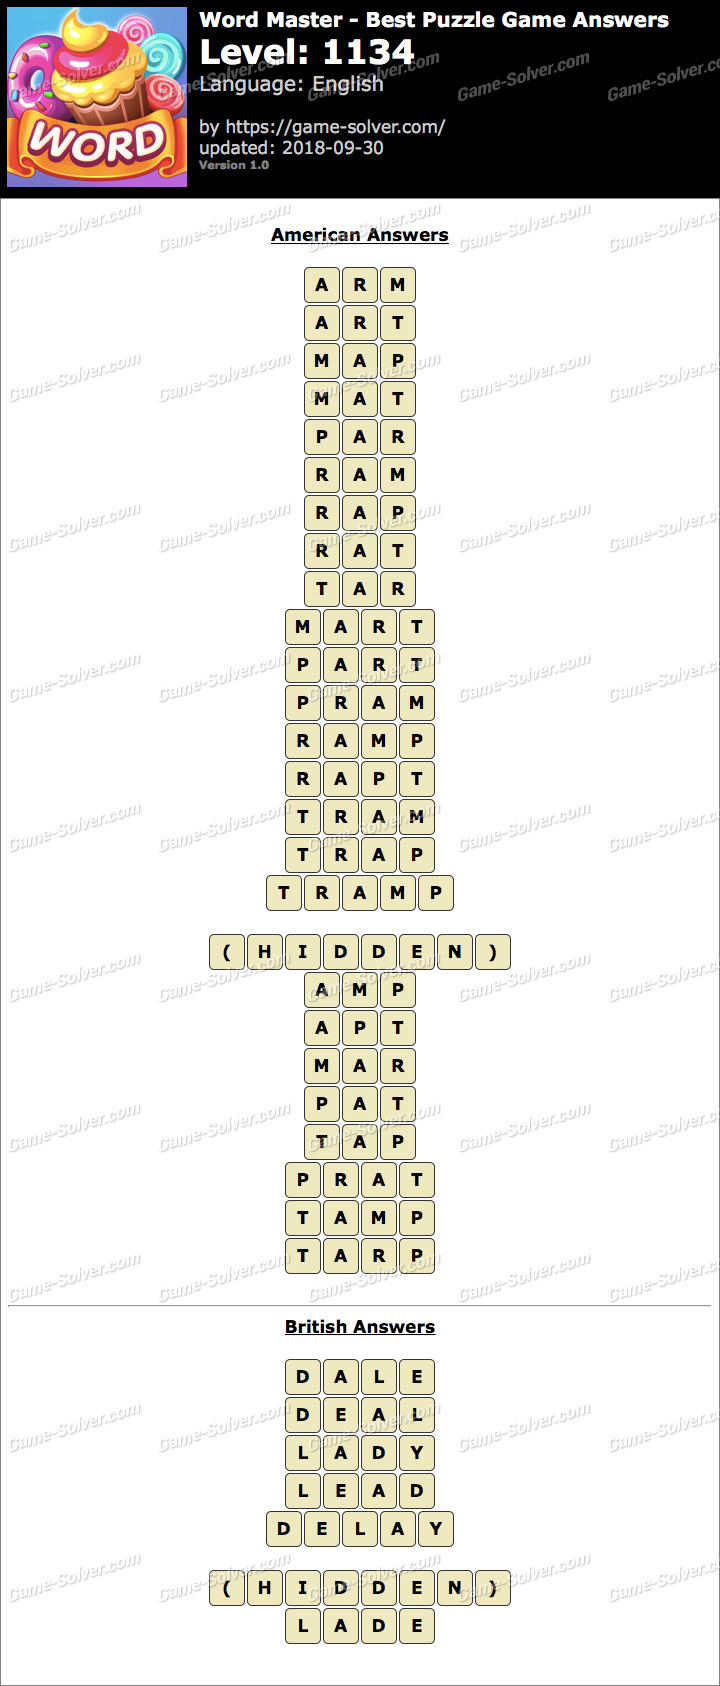 Word Master-Best Puzzle Game Level 1134 Answers